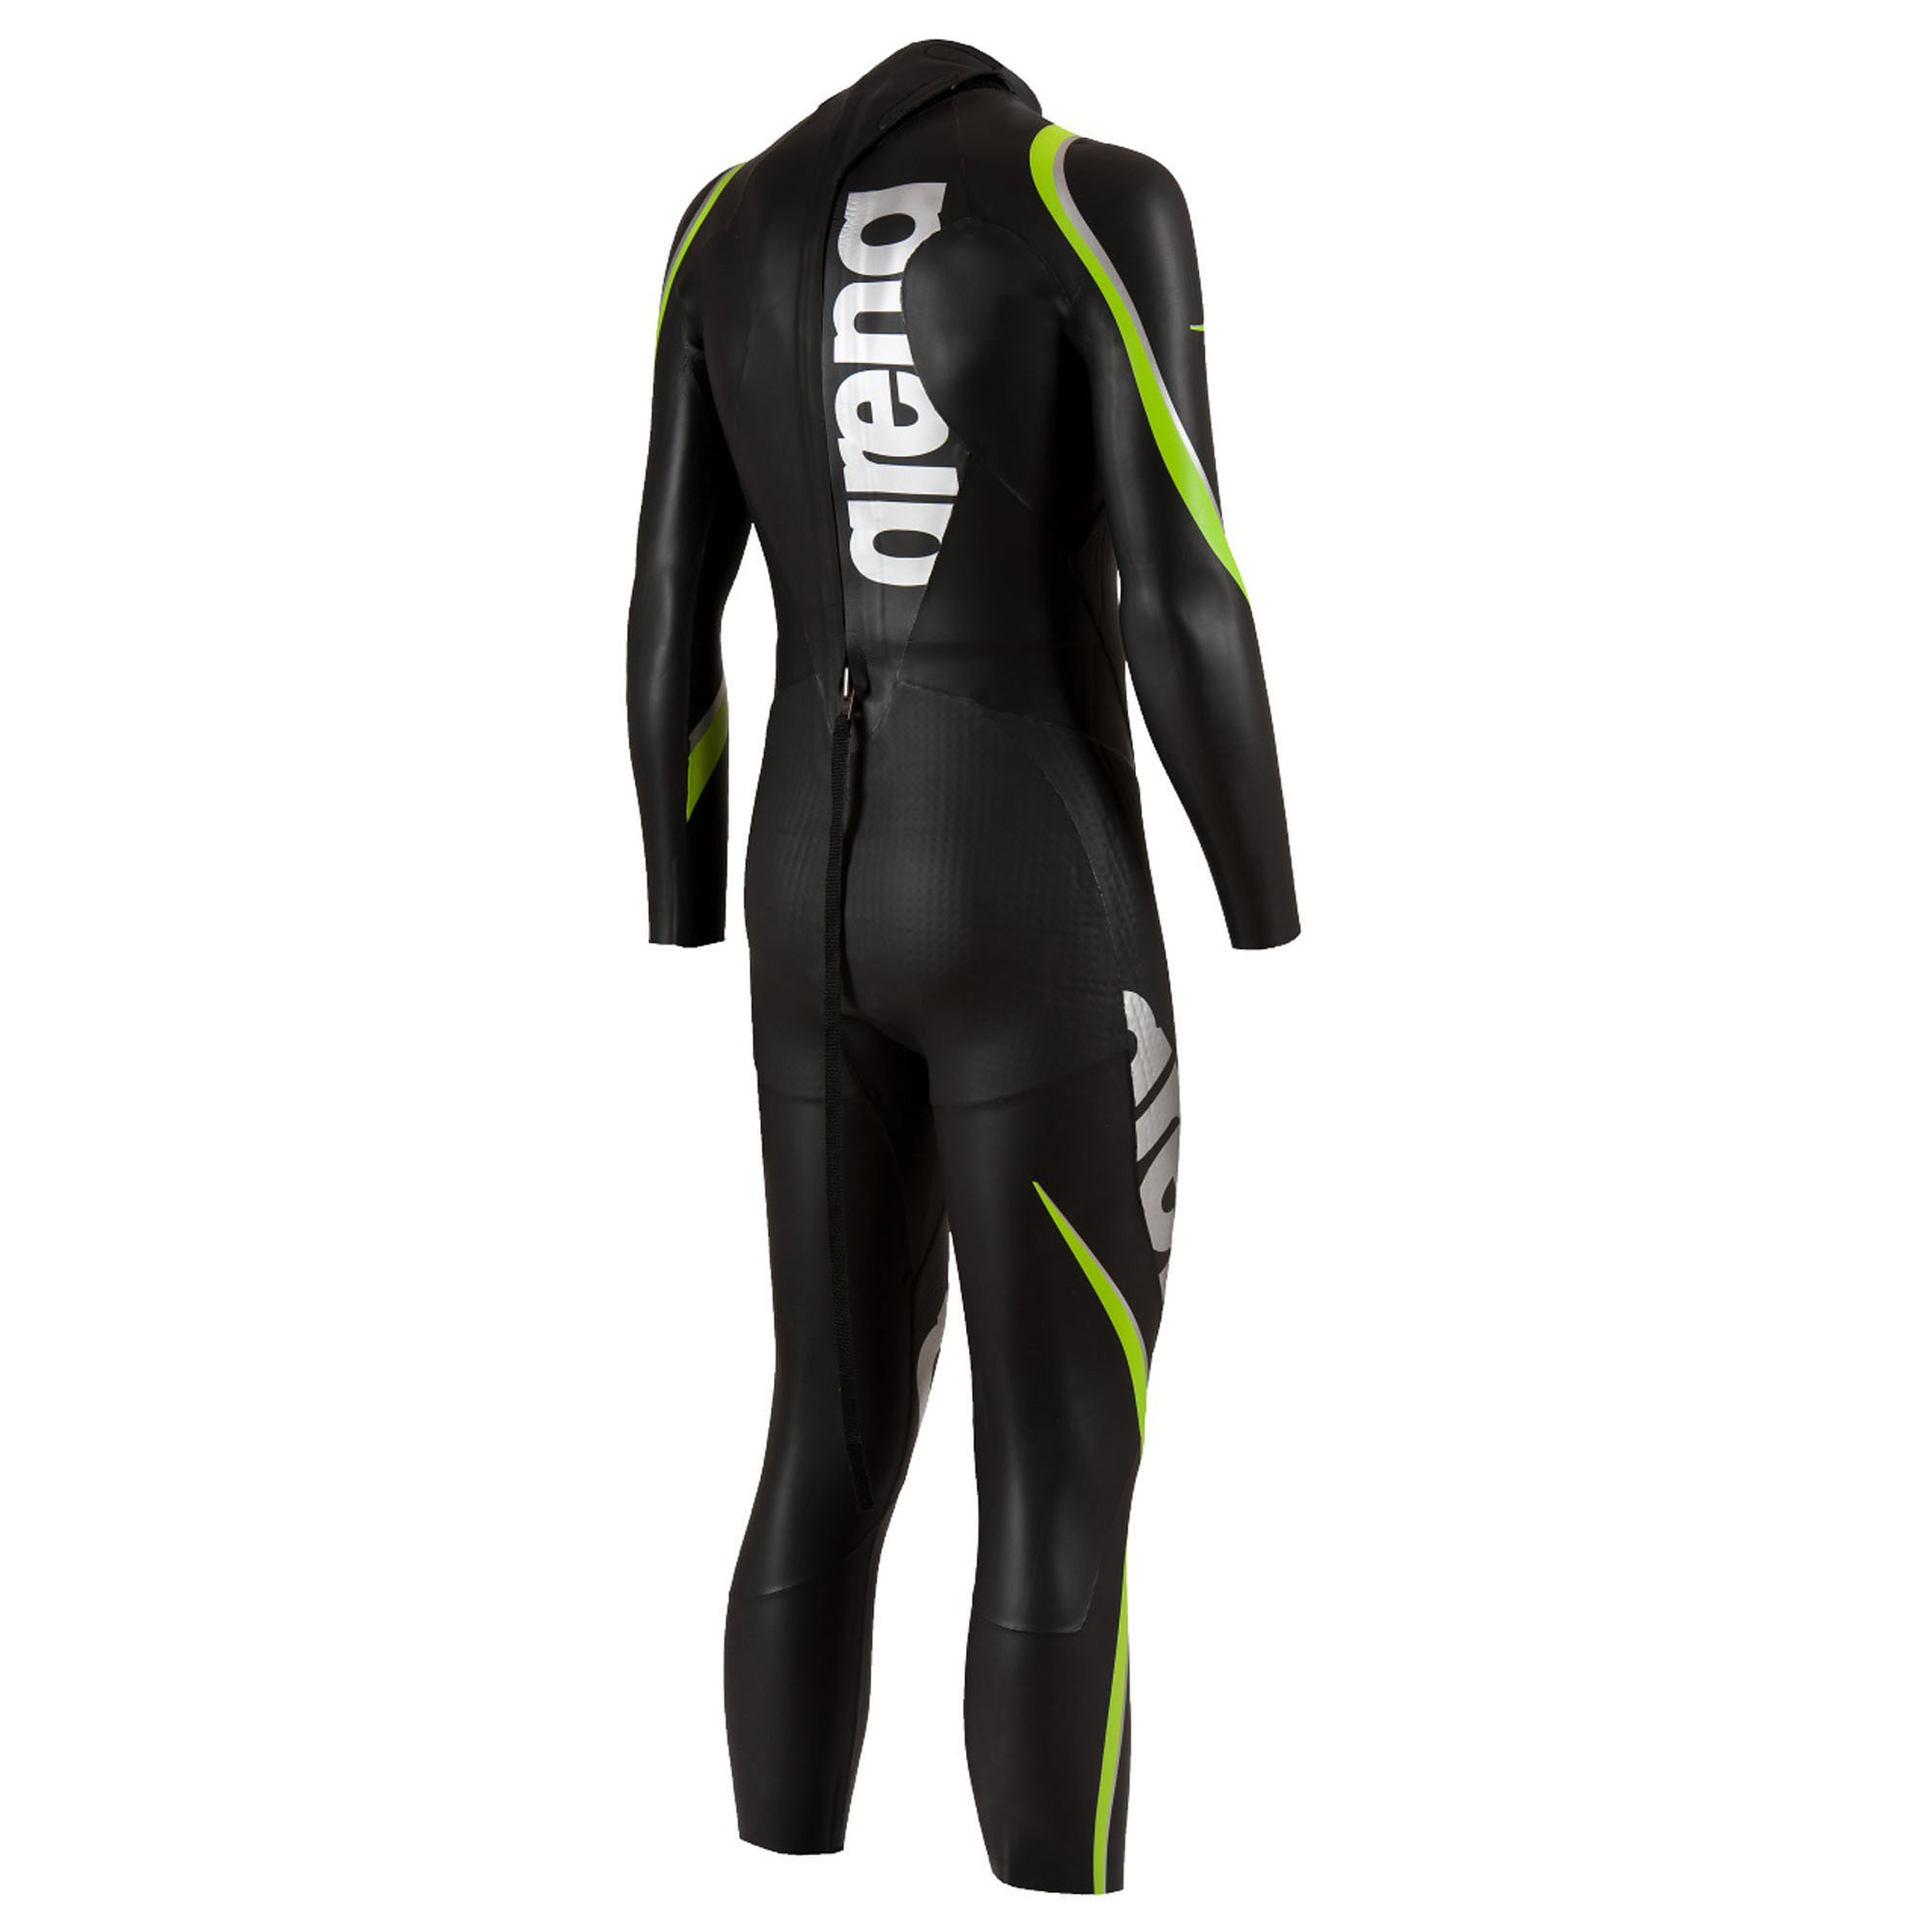 MUTA TRIATHLON ARENA TRIWETSUIT CARBON MAN 1A629 BACK.jpg